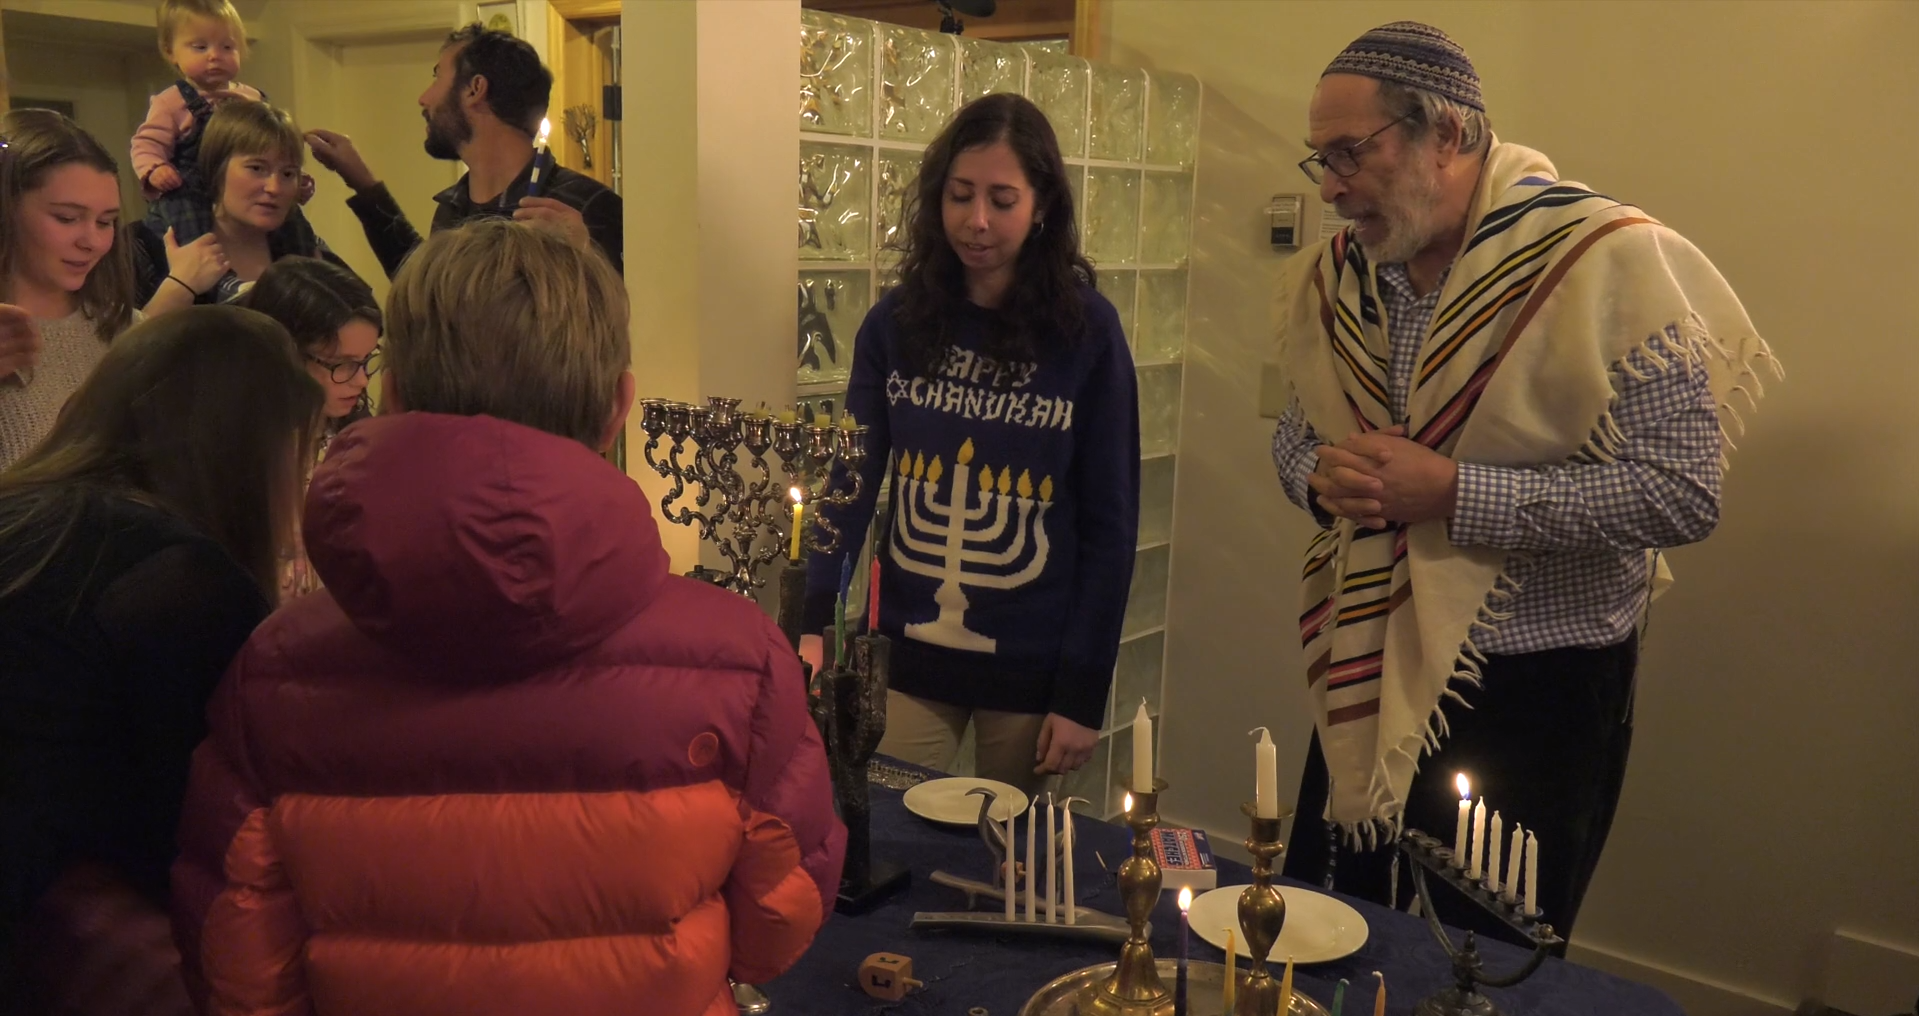 Rabbi Ed celebrates Hanukkah with his congregation